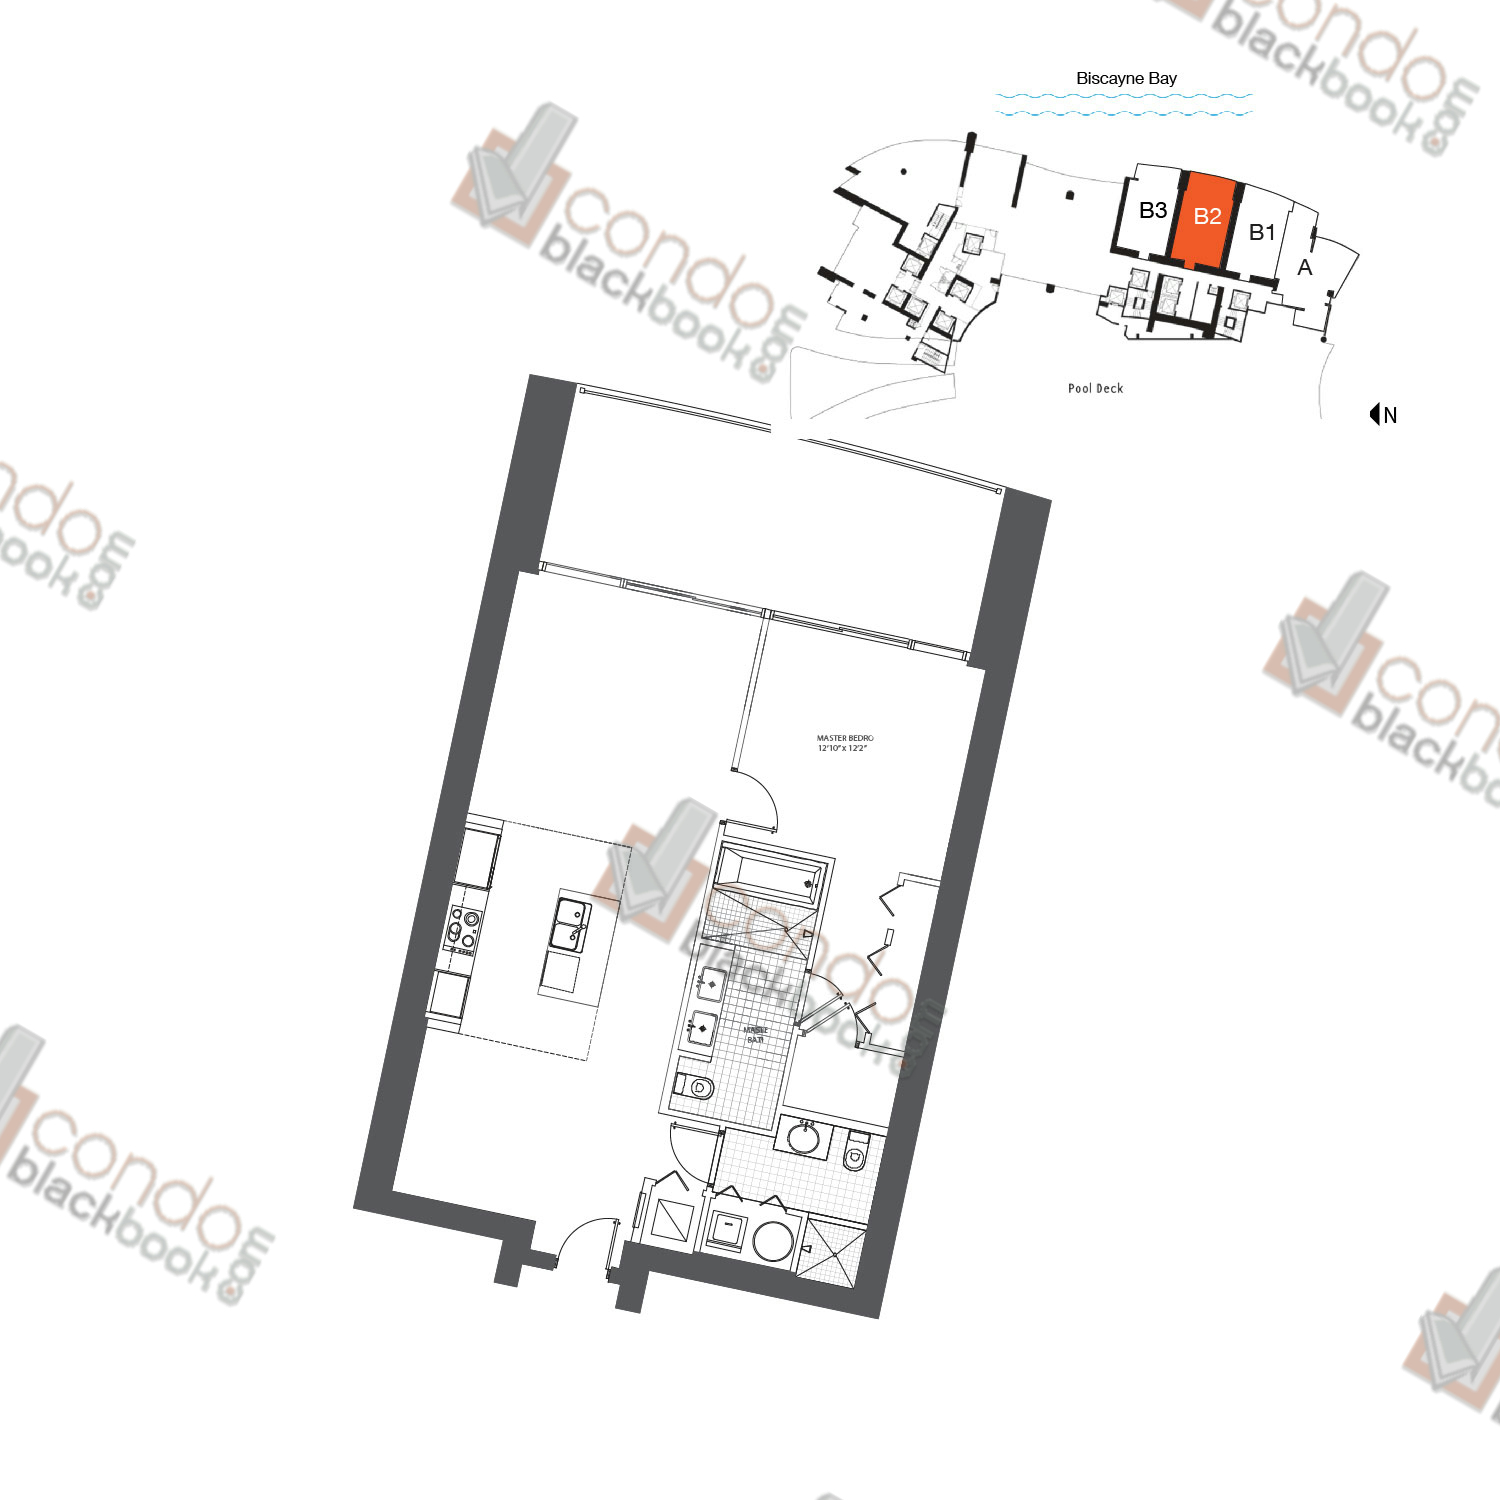 Floor plan for 900 Biscayne Bay Downtown Miami Miami, model FLAT B2, line 05, 1/2 bedrooms, 926 sq ft